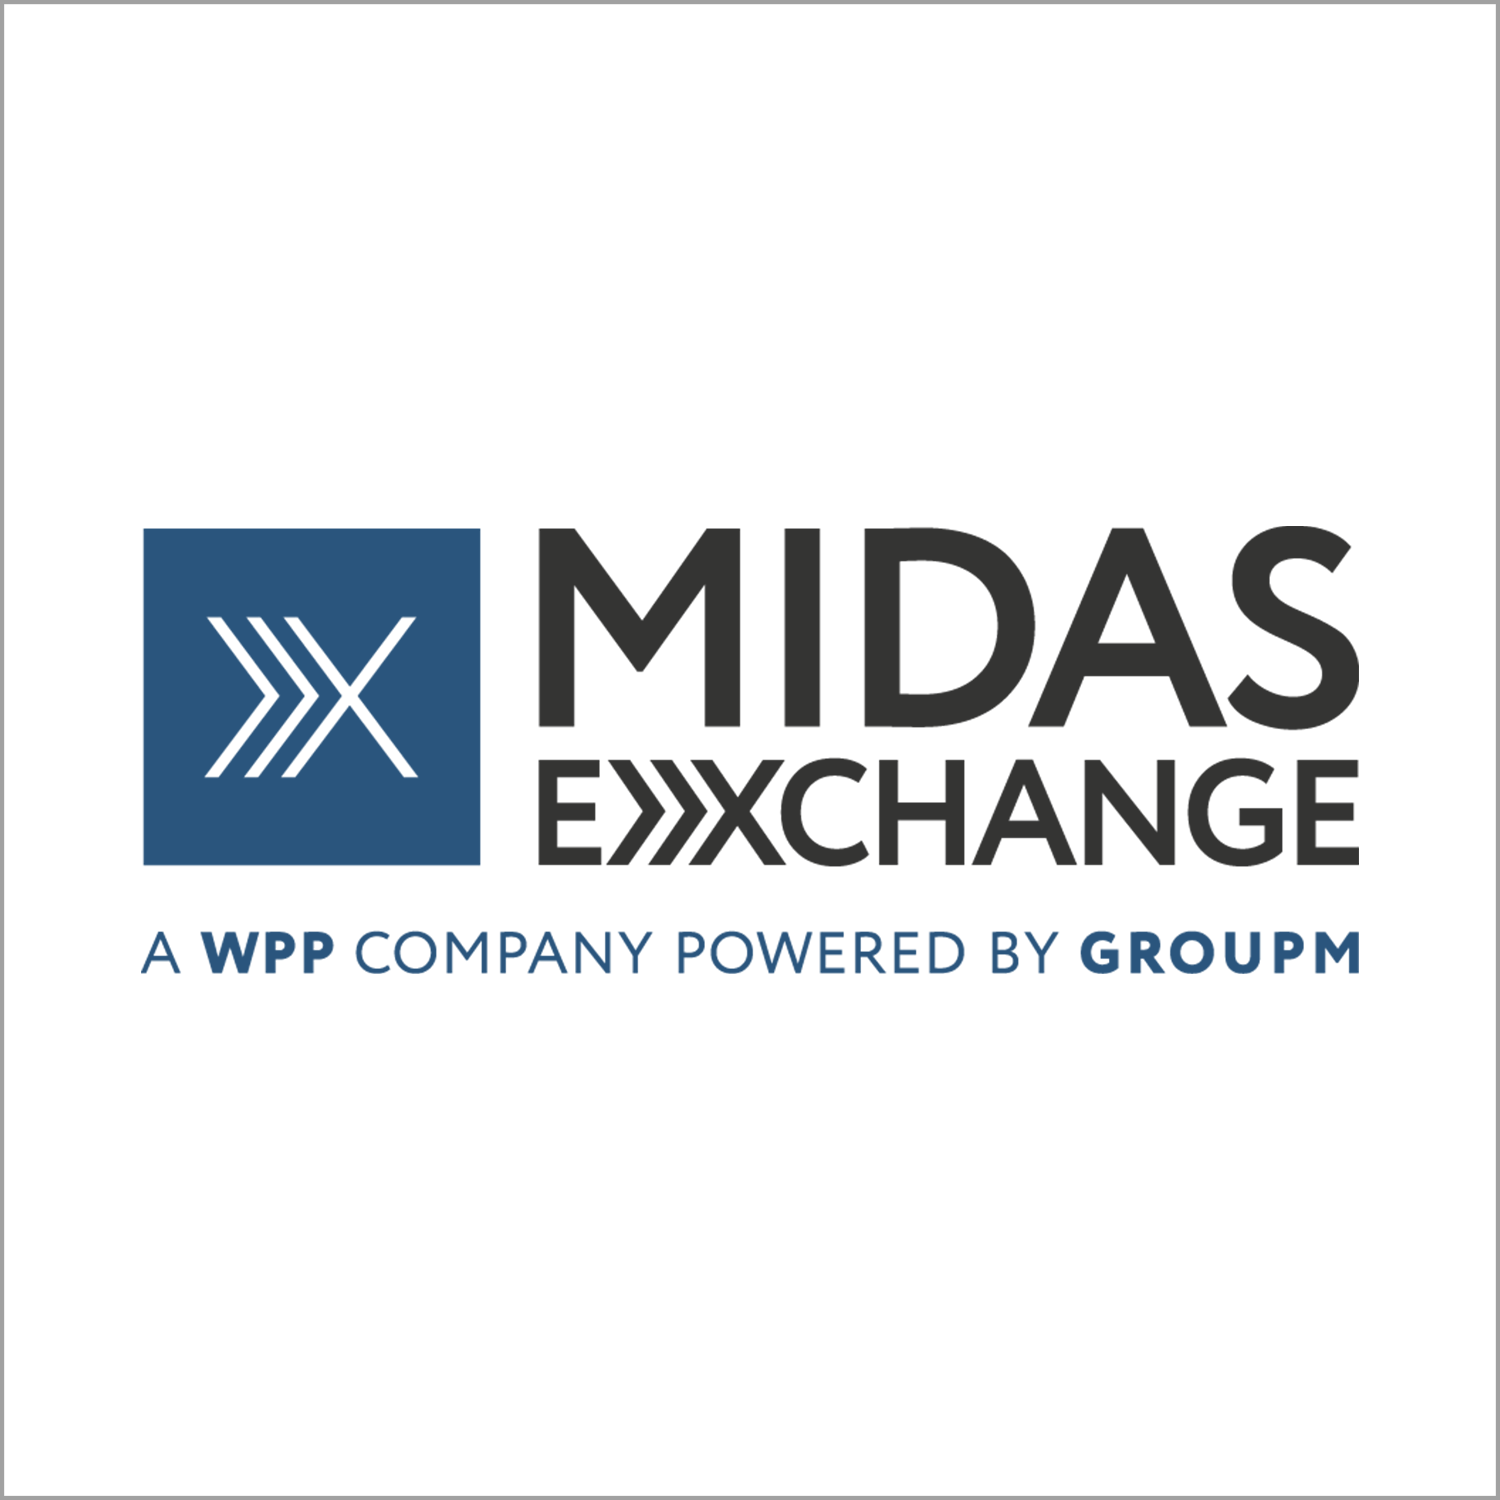 GroupM Midas_GS_Members_Logos.png